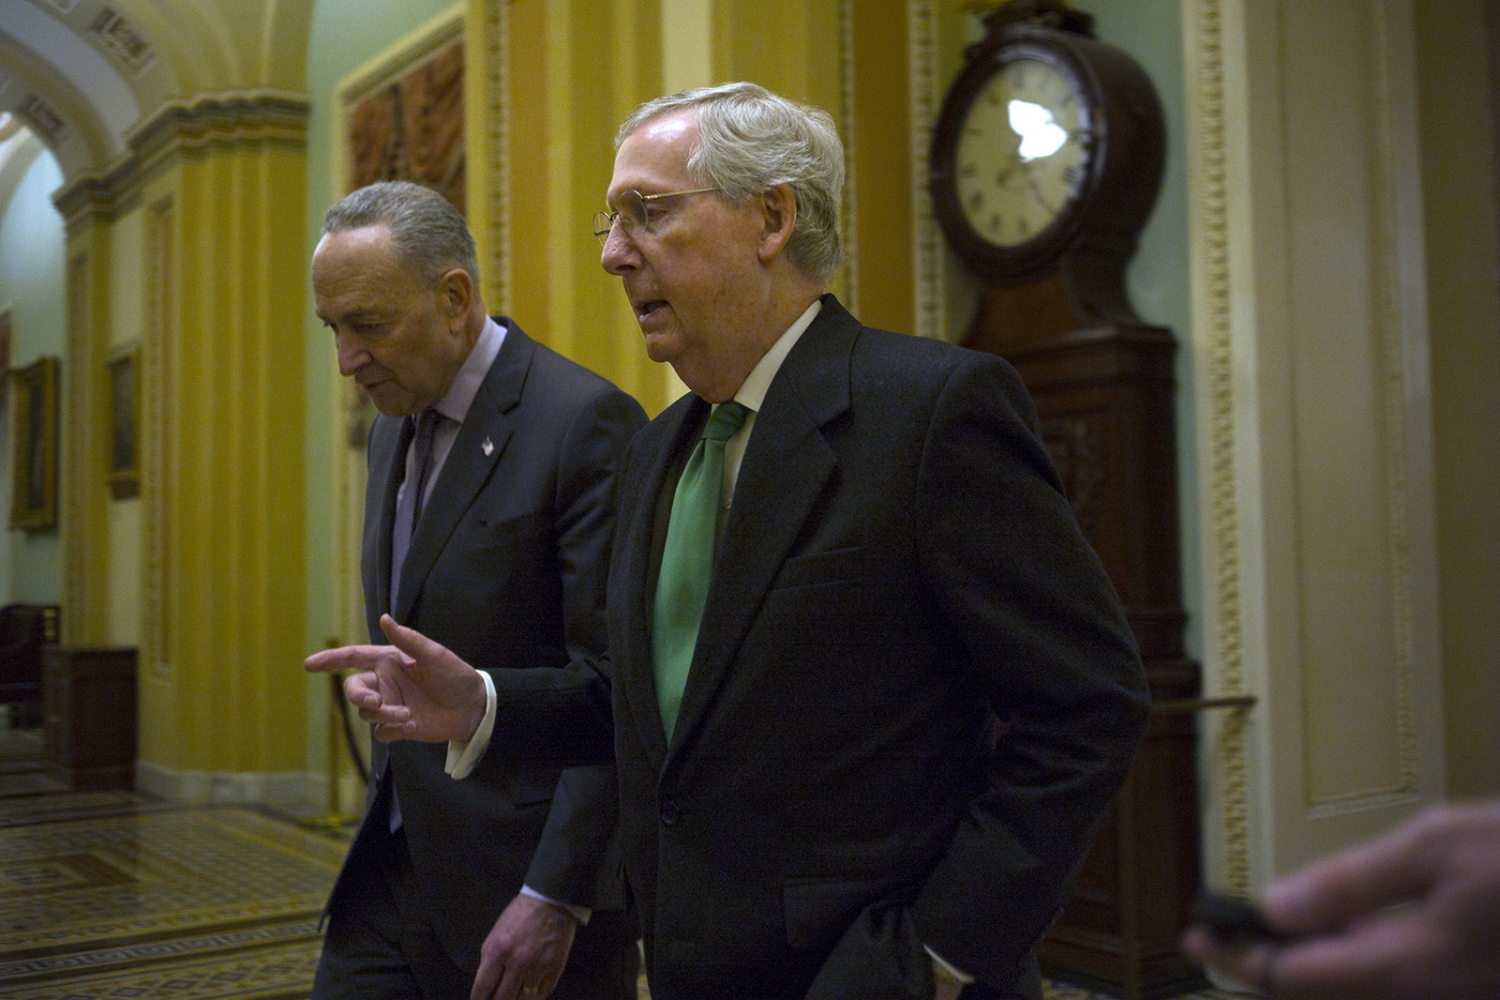 Senators Mitch McConnell and Chuck Schumer discuss the deal that will end the government shutdown as they walk into the Senate Chamber.